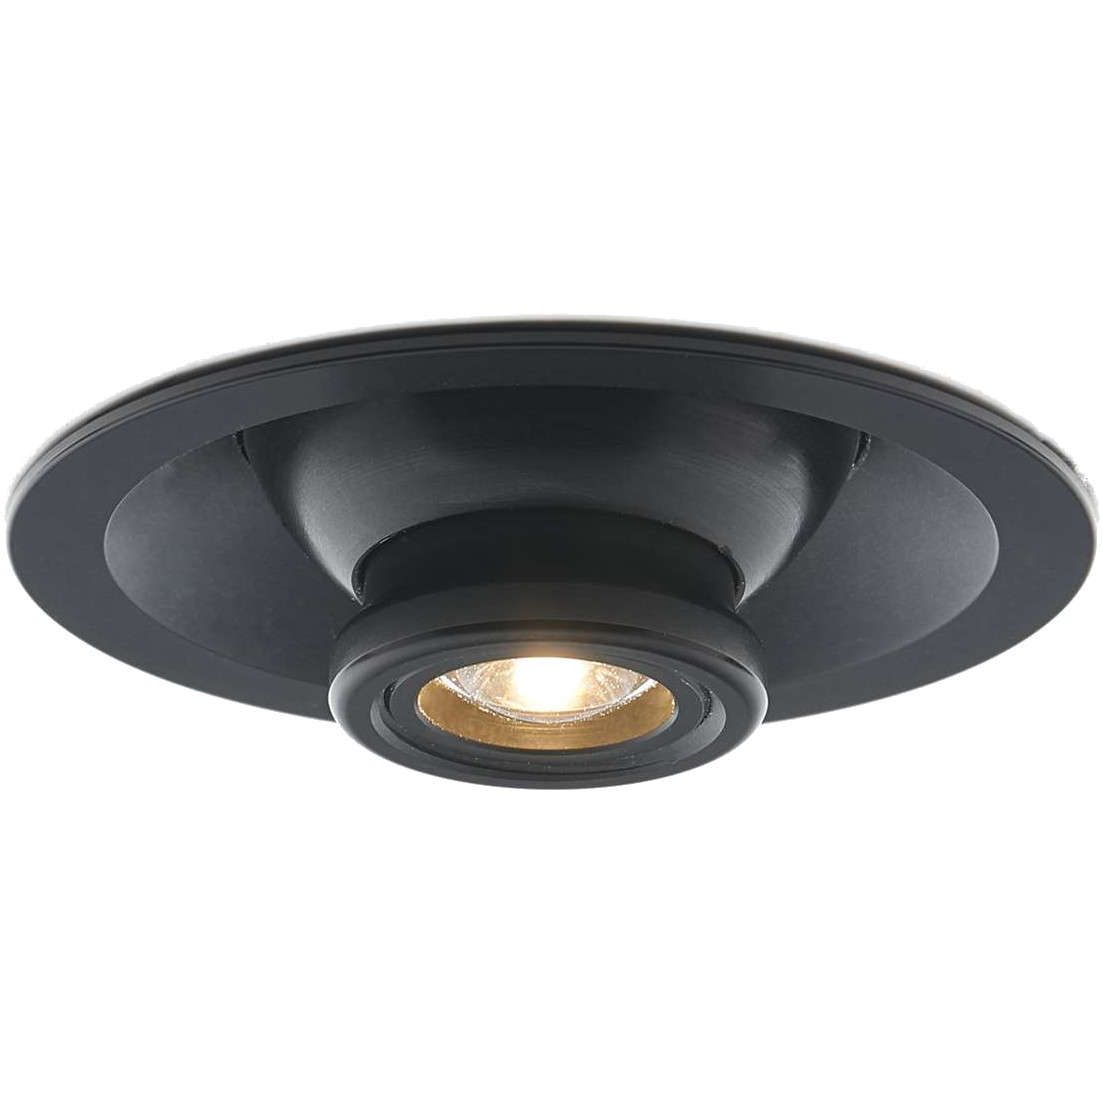 Zhoom Recessed Ceiling Adjustable Spotlight by Molto Luce